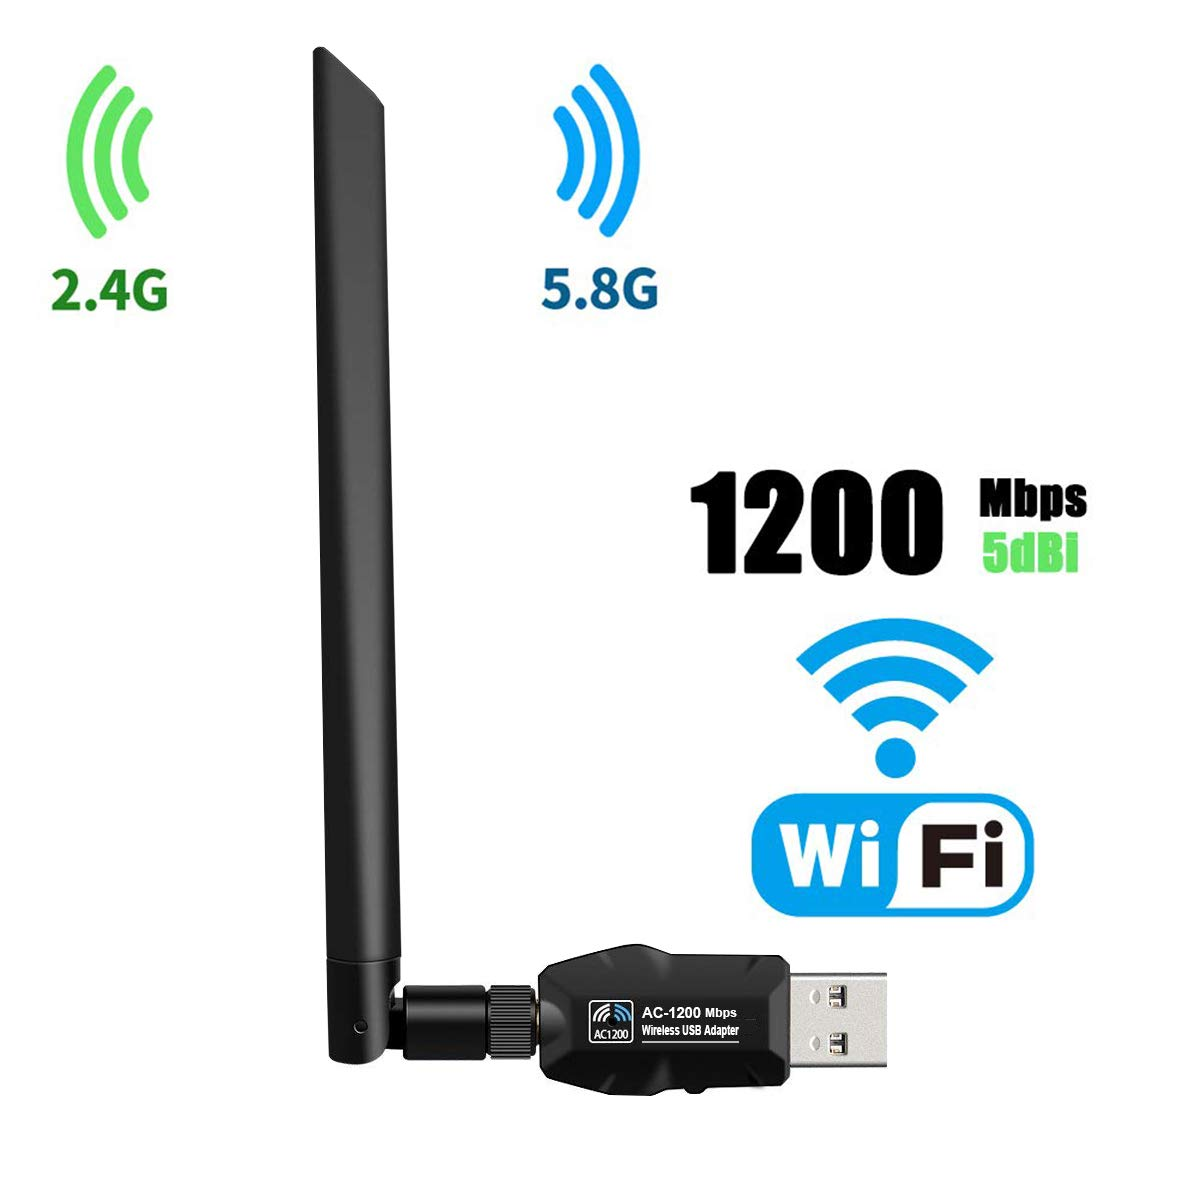 USB WiFi Adapter 1200Mbps, USB 3.0 Wireless Network WiFi Dongle with 5dBi Antenna for PC/Desktop/Laptop/Mac, Dual Band 2.4G/5G 802.11ac,Support Windows 10/8/8.1/7/Vista/XP, Mac10.5-10.14 by KingFuture